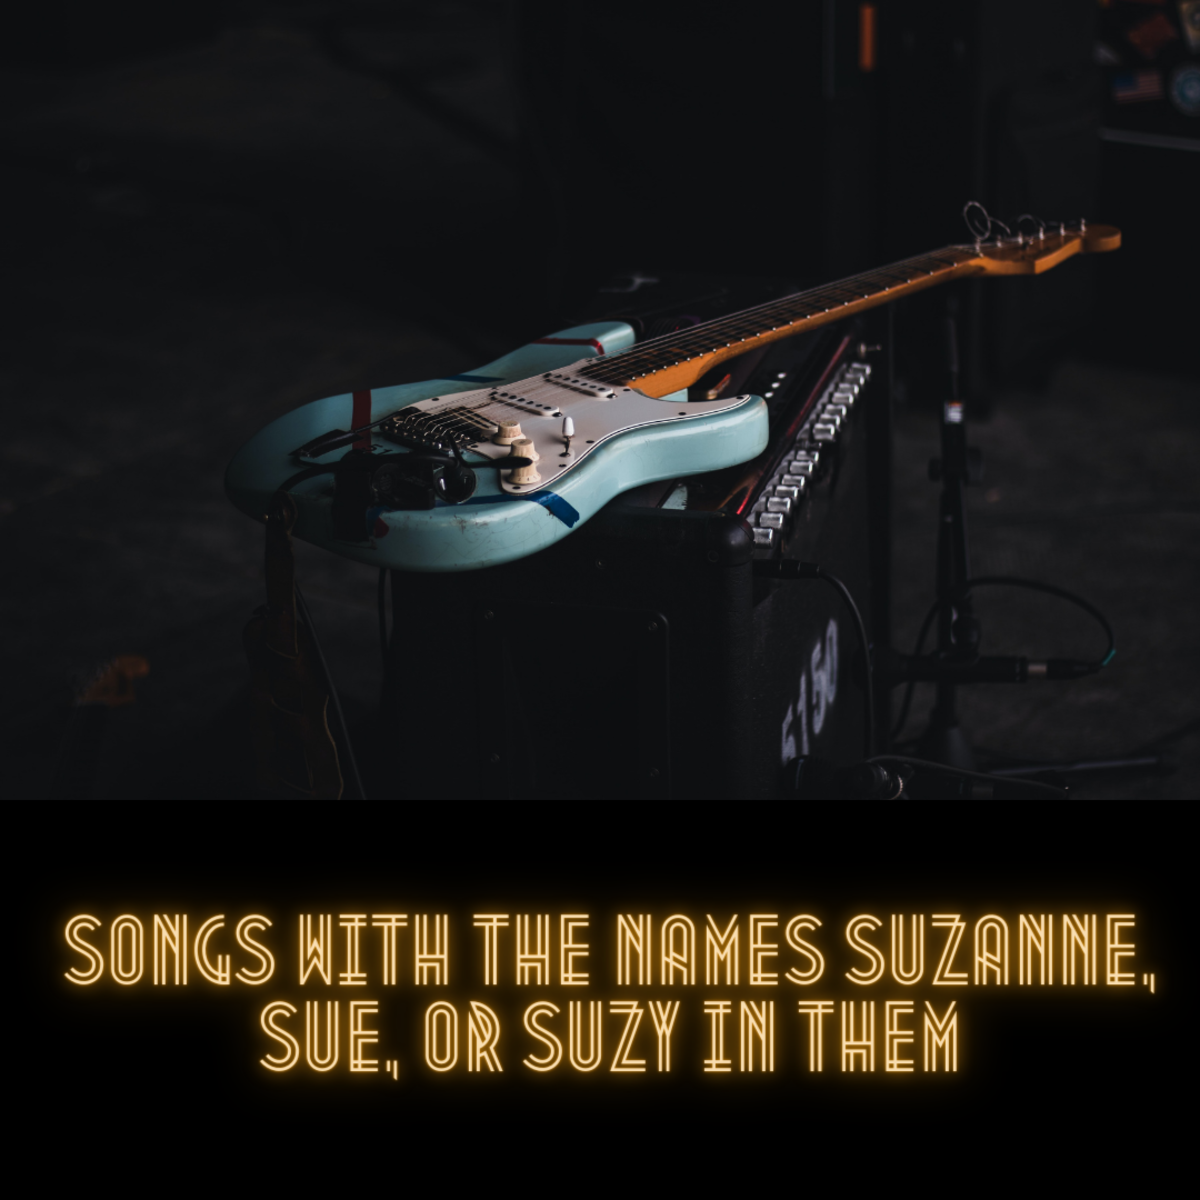 Take a listen to these songs and see which is best for the Suzanne in your life!